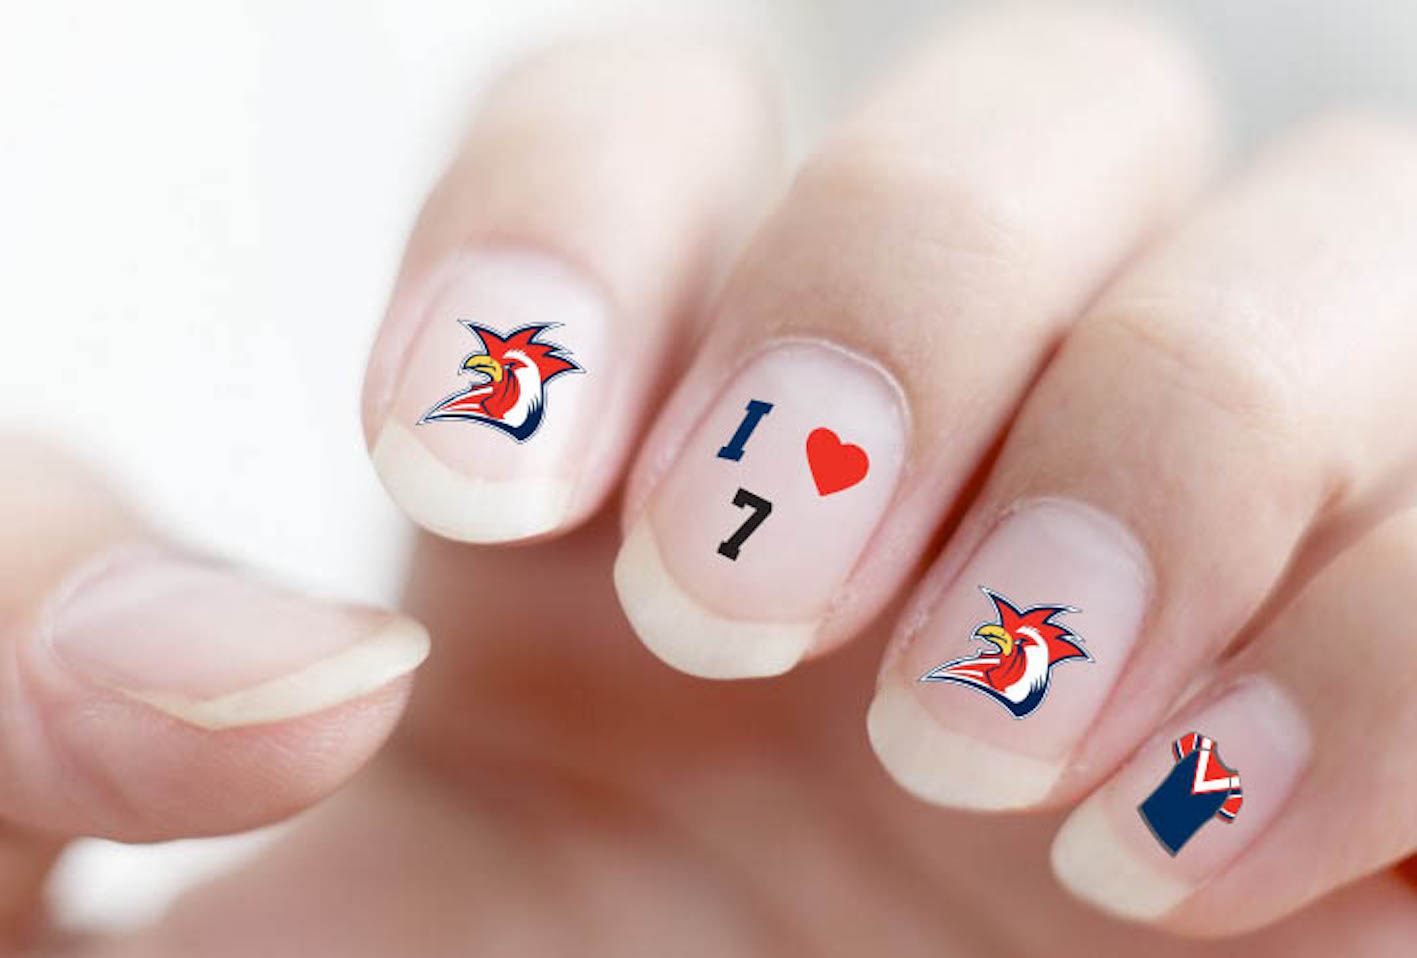 Sydney roosters nrl nail art decal stickers gel or polish ebay sydney roosters nrl nail art decals prinsesfo Gallery